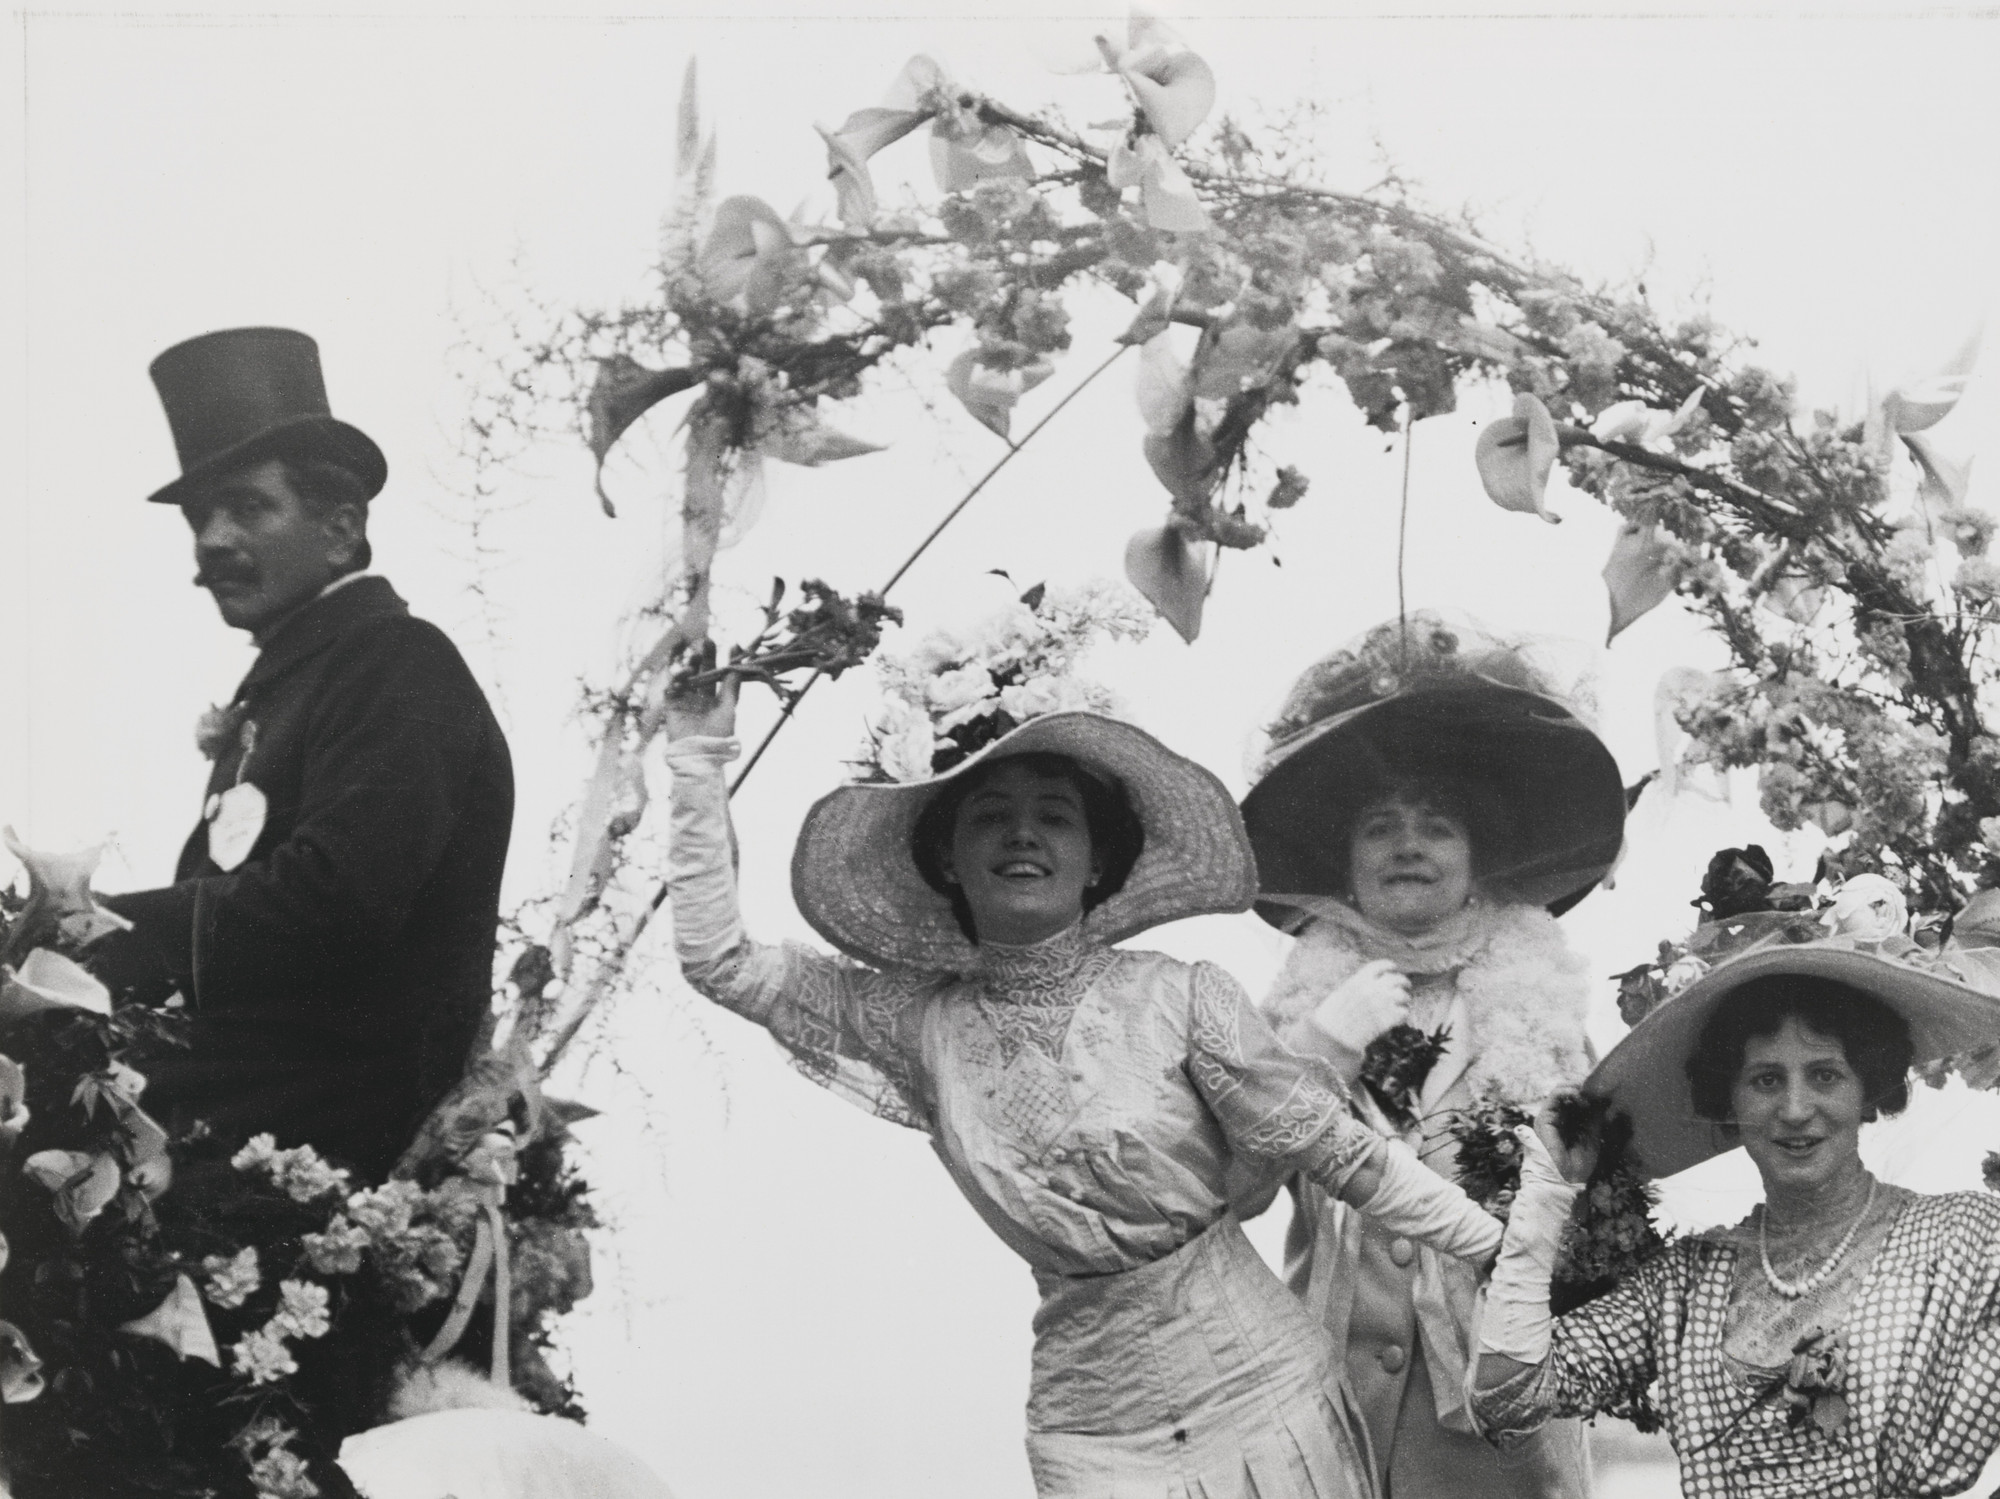 Unknown photographer. Monaco - Bataille de Fleurs. 1910